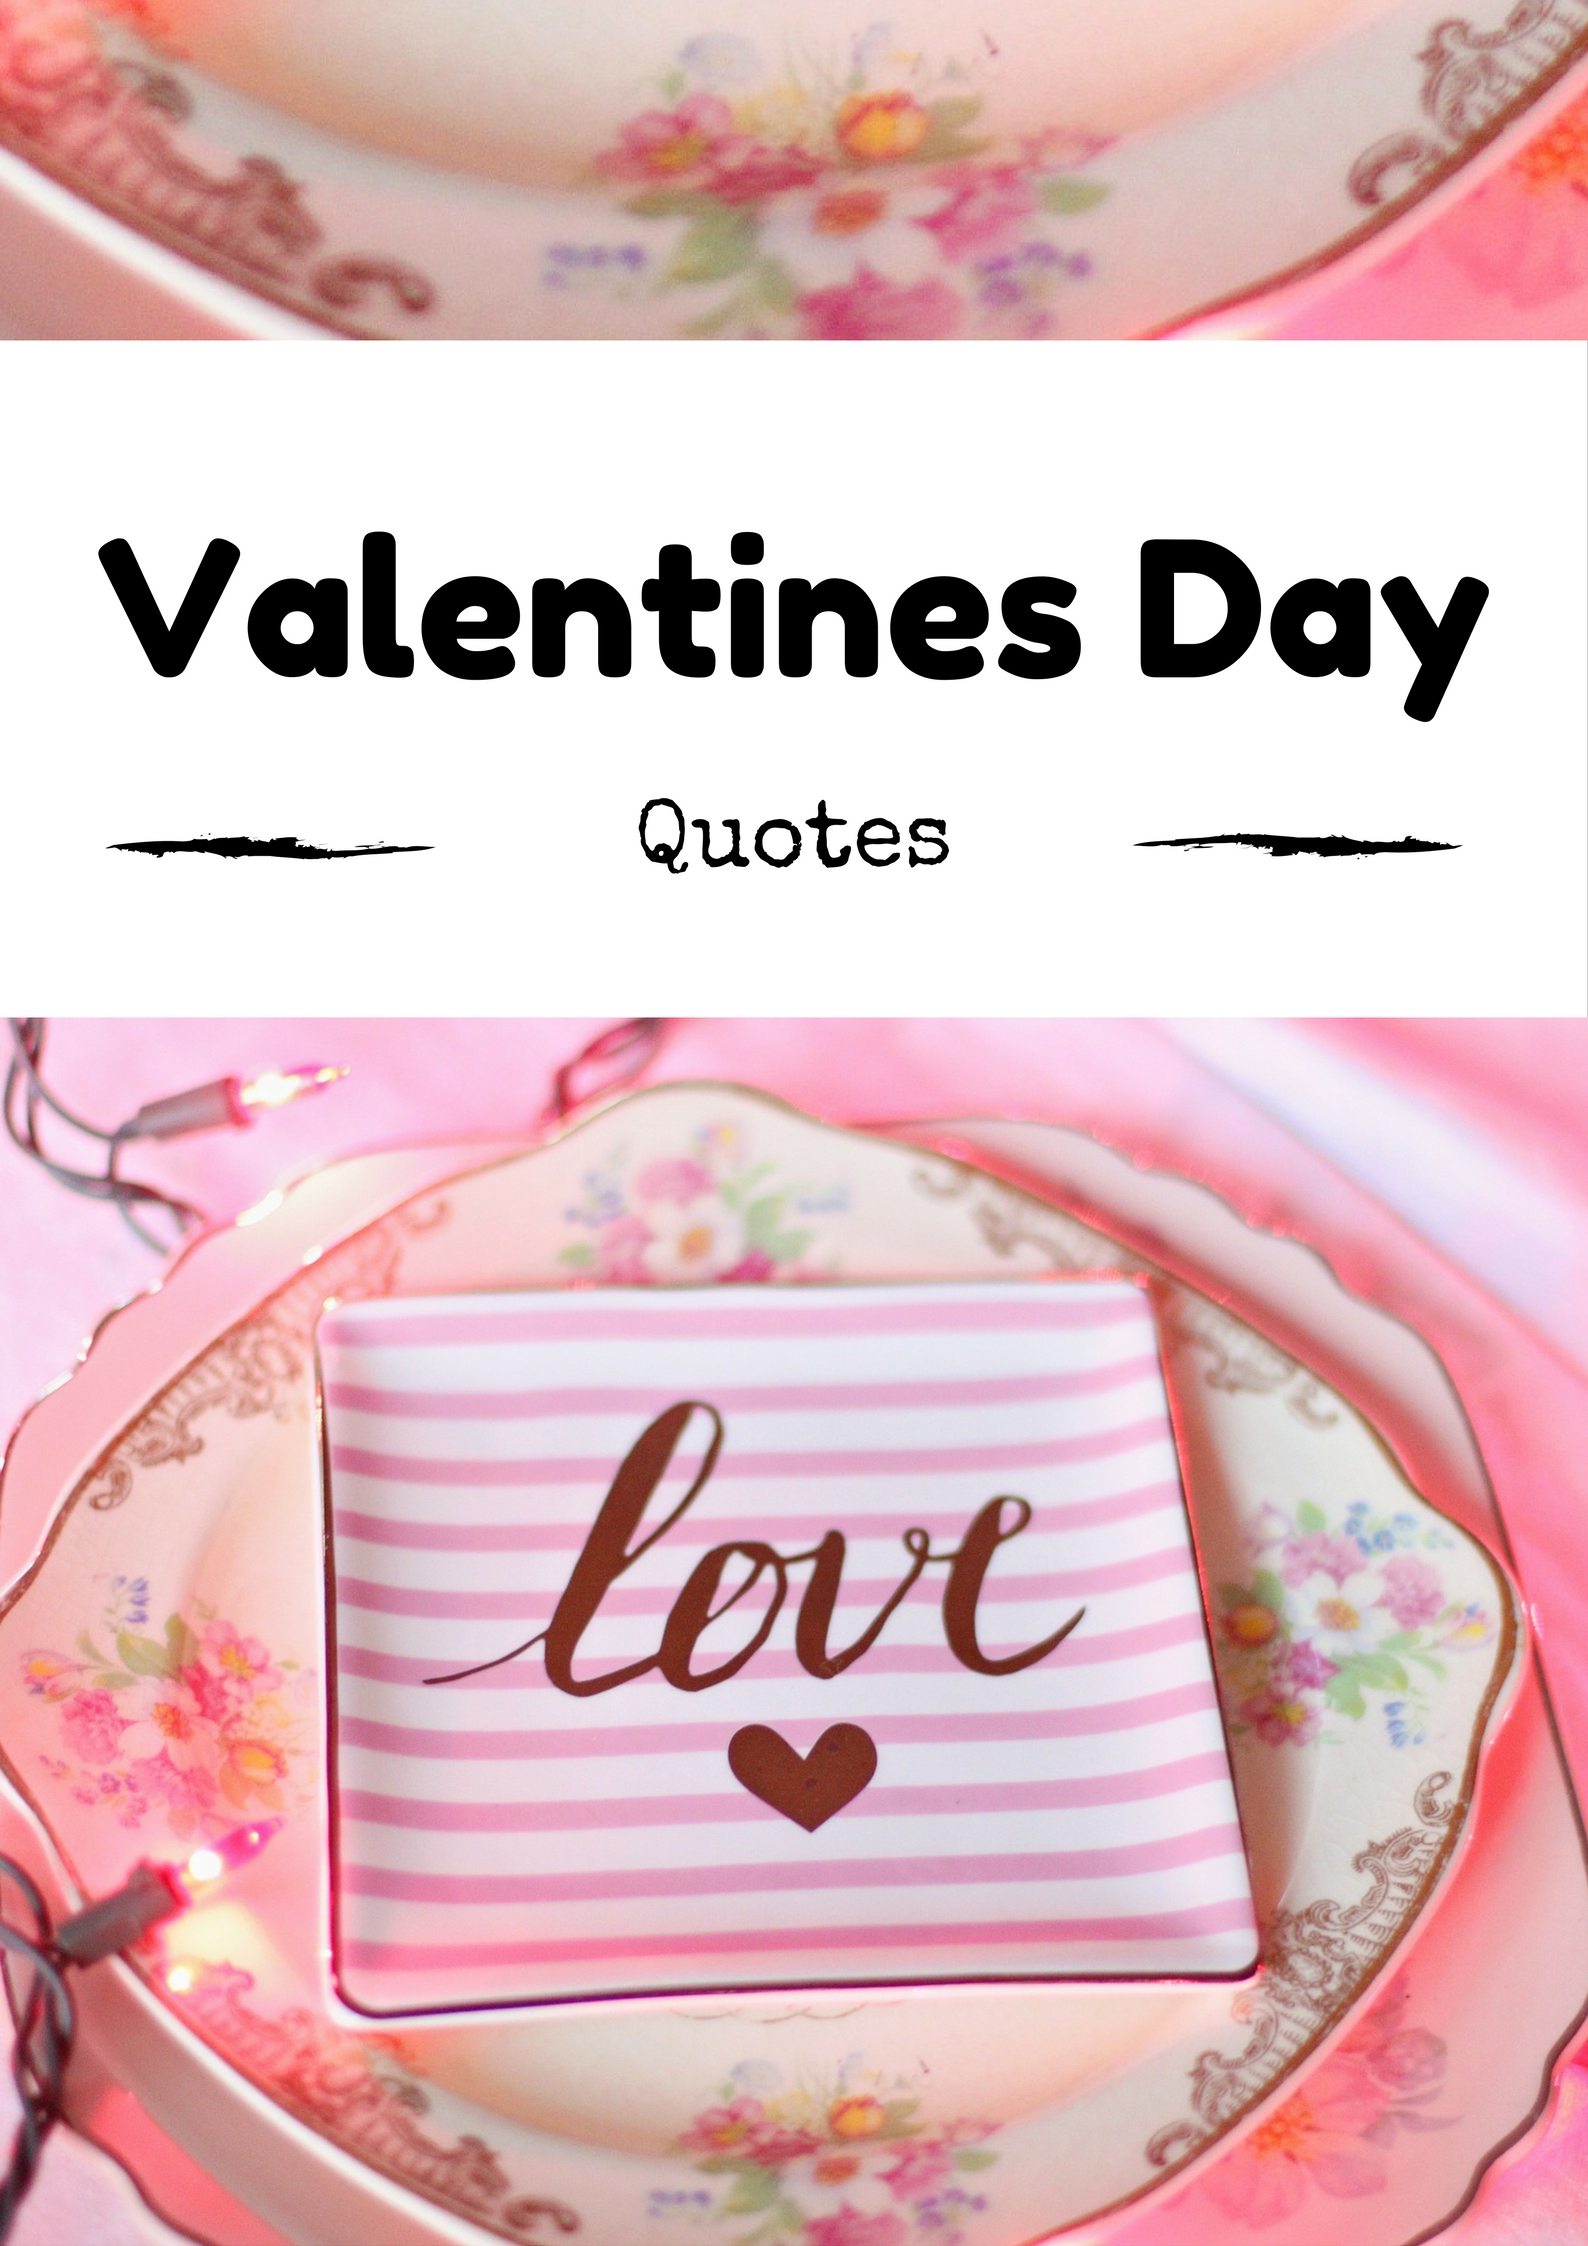 Valentines day quotes – Rose life